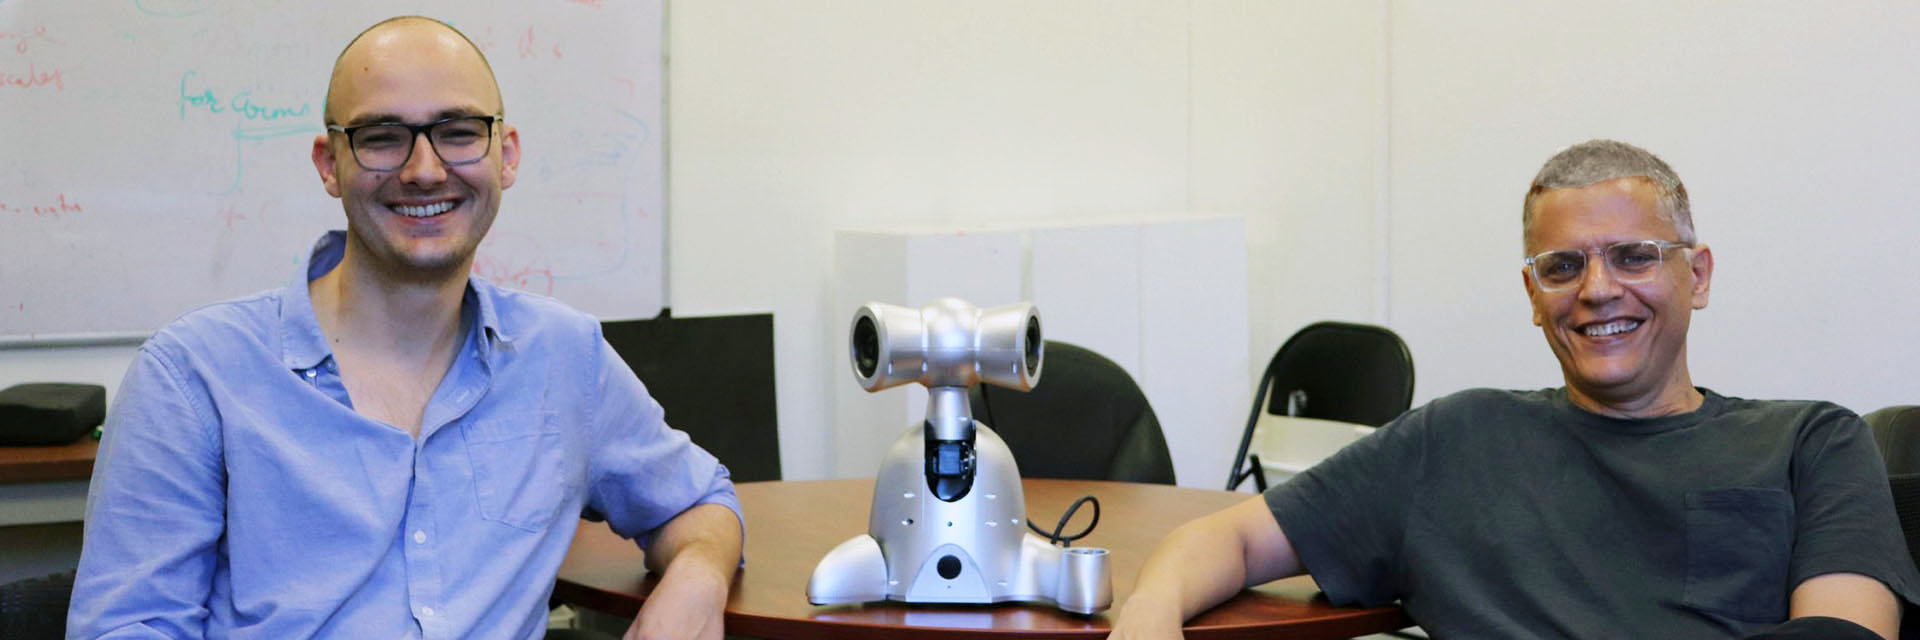 Ph.D candidate Richard Savery and Professor Gil Weinberg pose with a Shimi, one of the robots from the Robotic Musicianship lab.